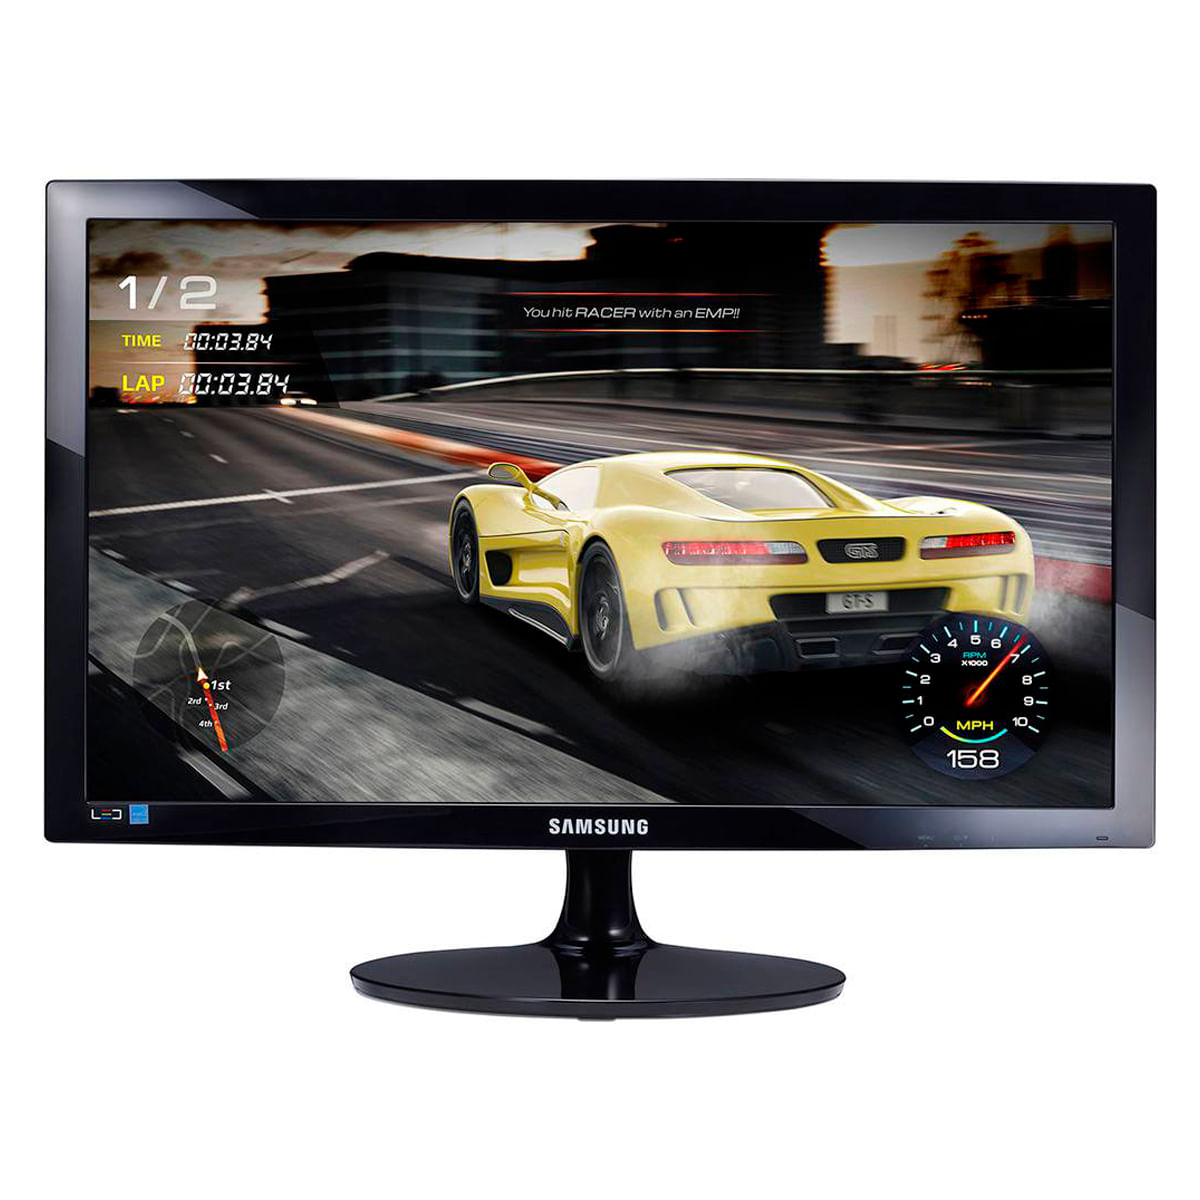 Foto 1 - Monitor Game Samsung 24 Polegadas LED Full HD LS24D332HSX/ZD